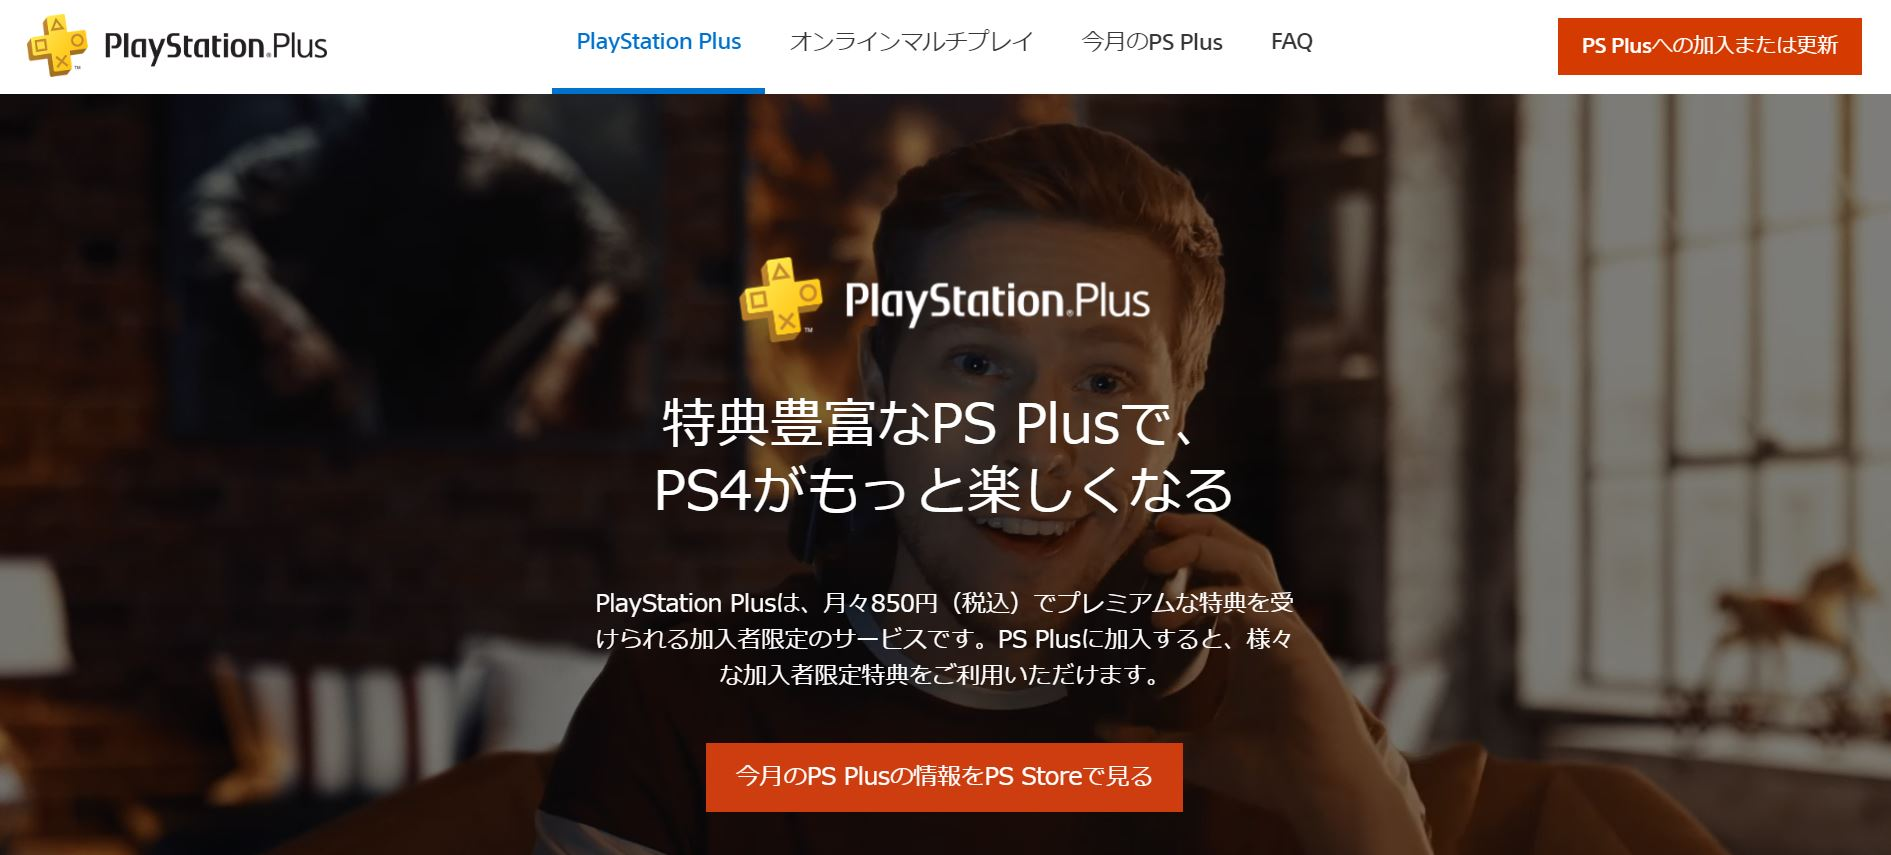 playstation plus_official web stite